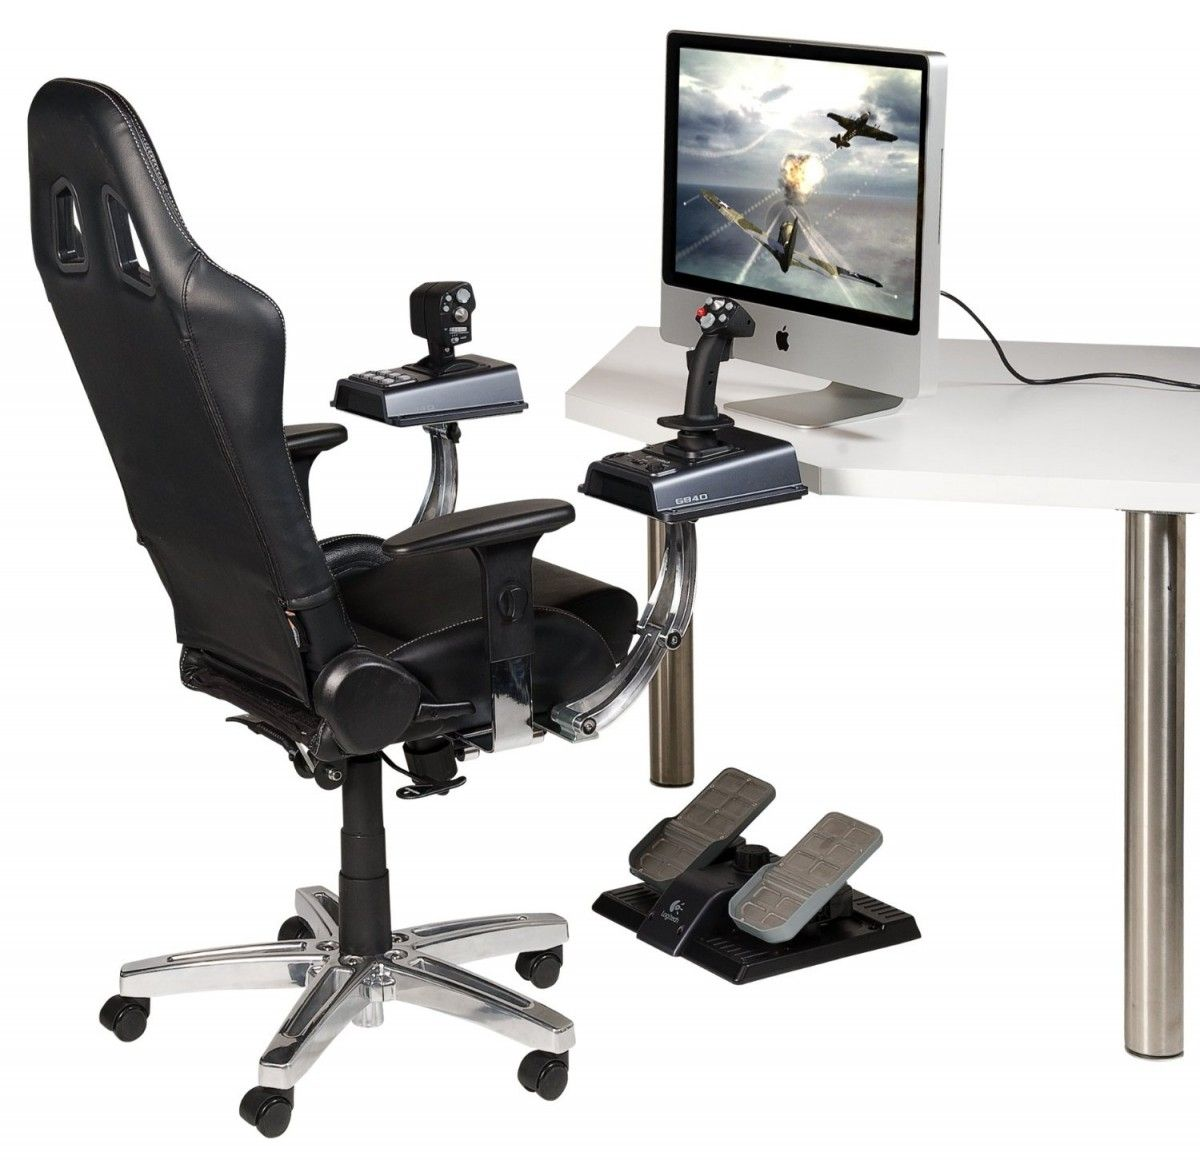 Best office chair for hours productcreationlabs